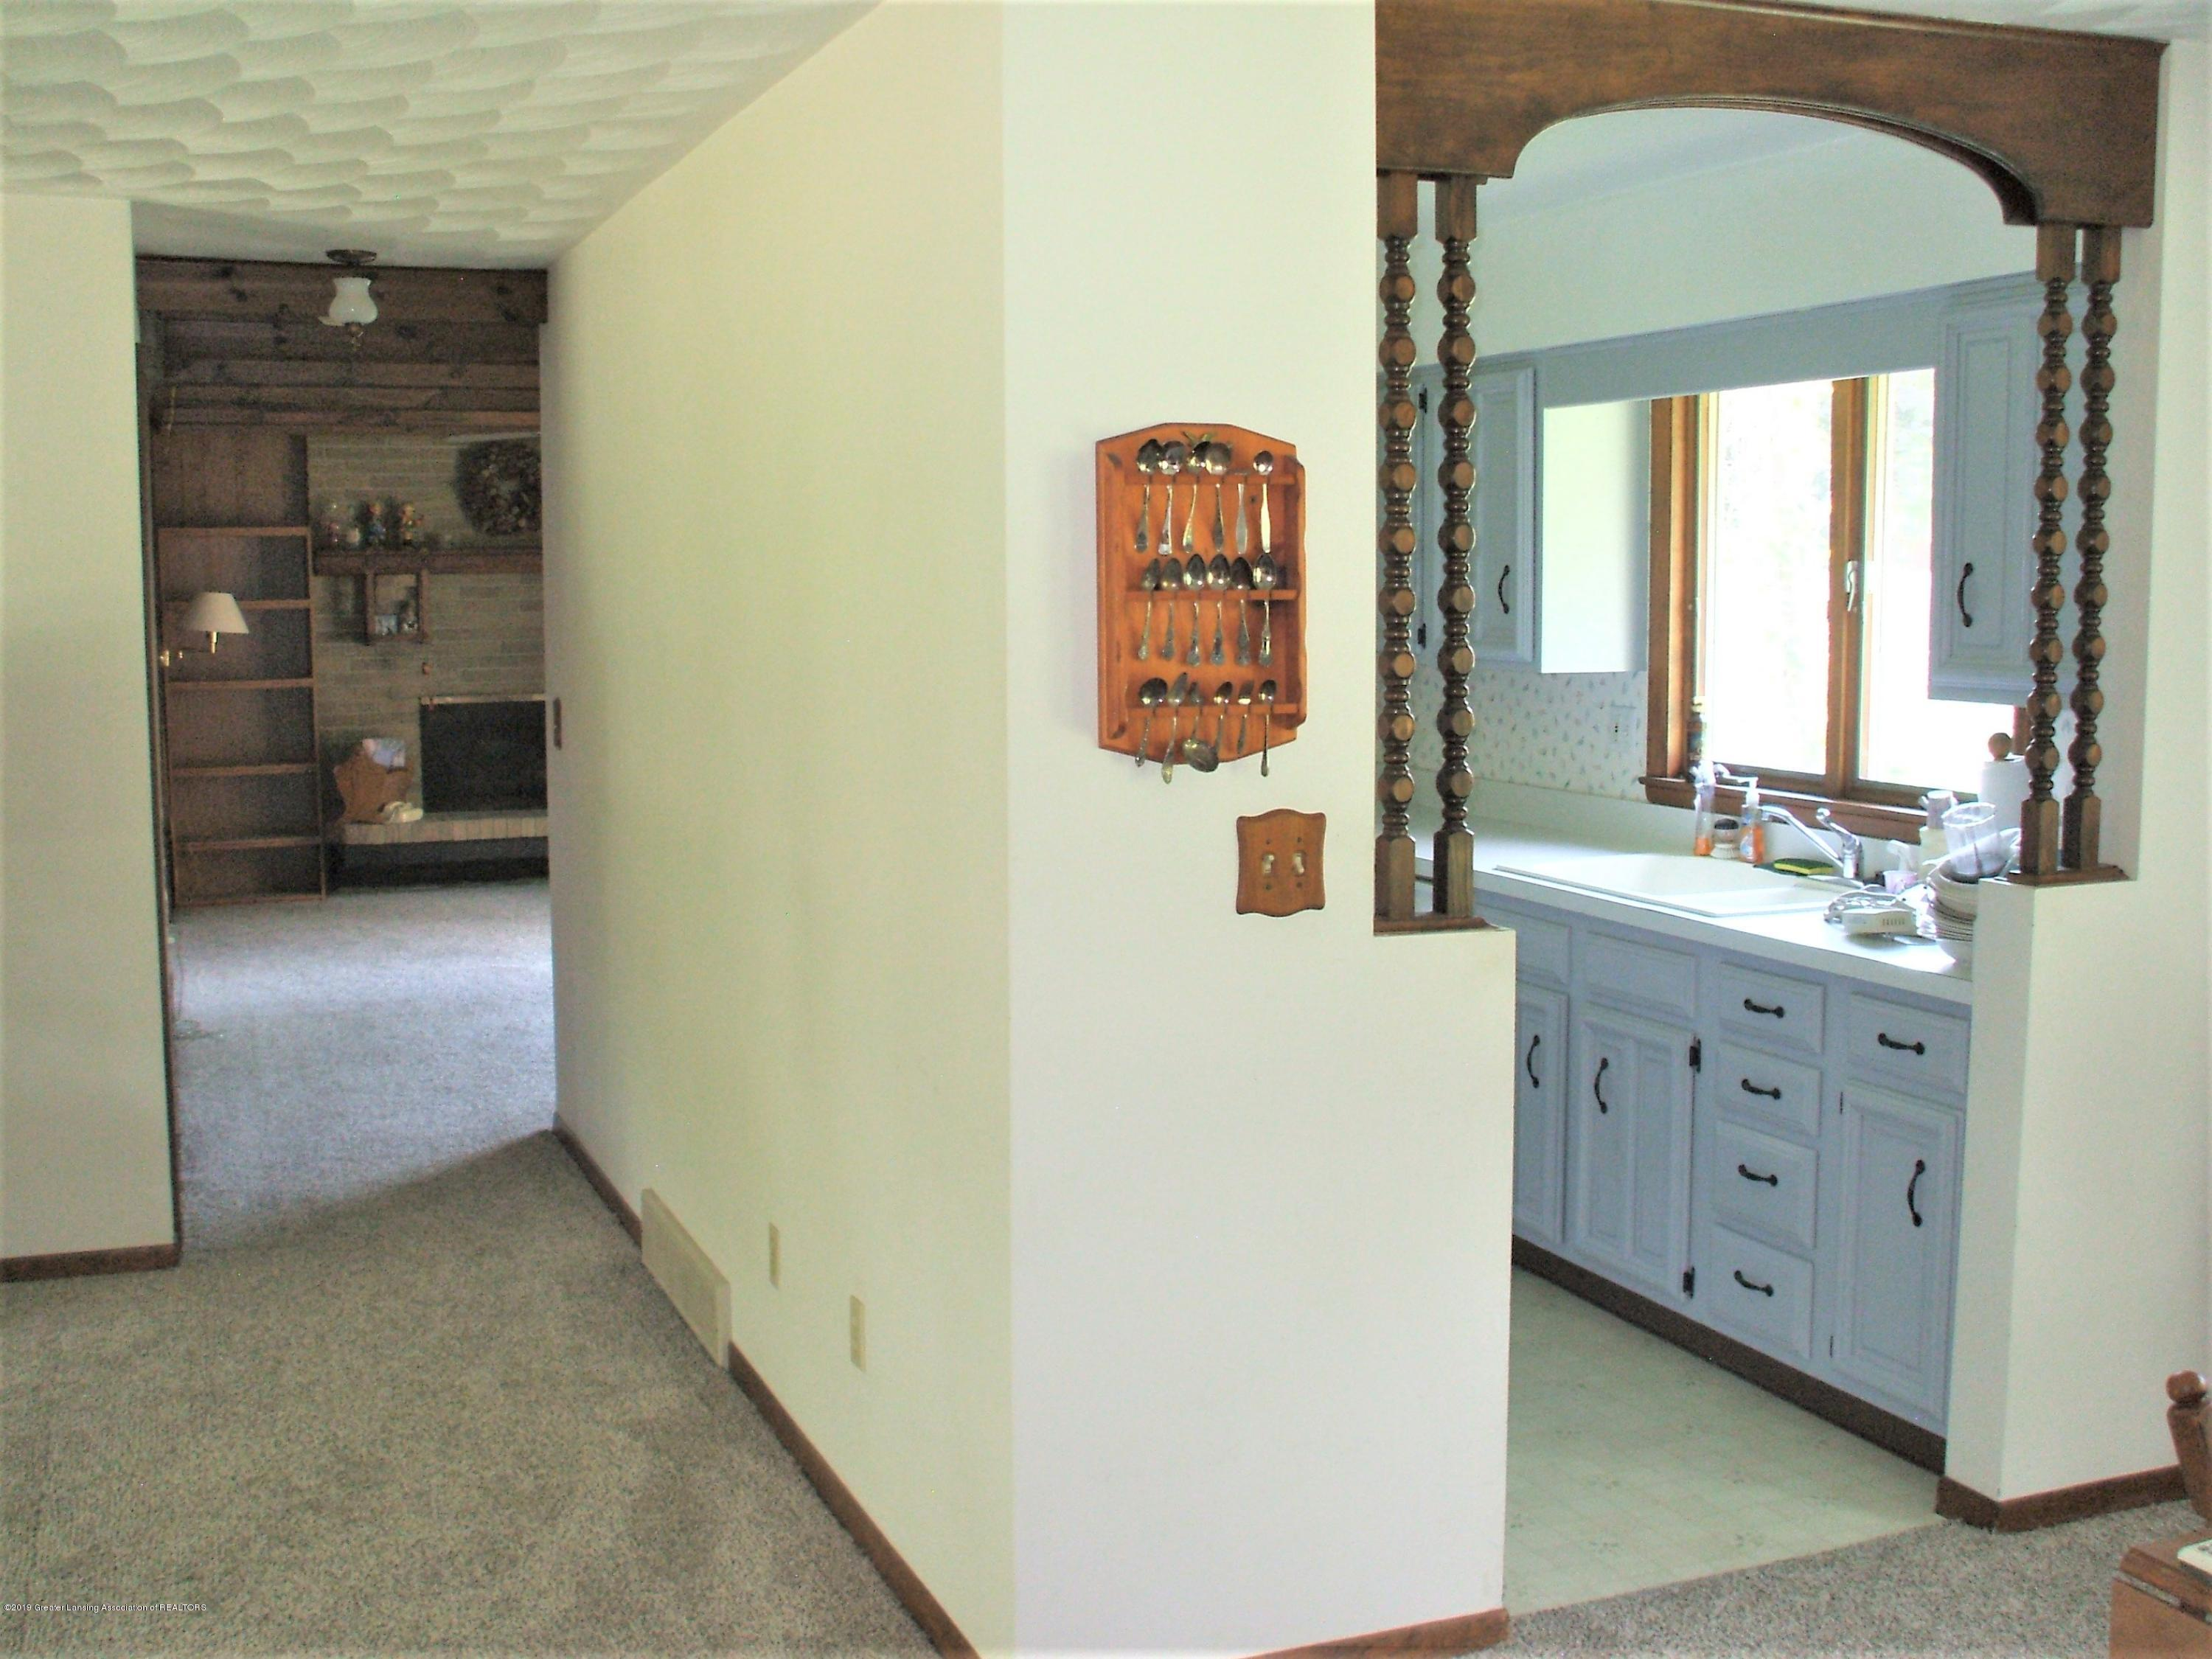 807 W McConnell St - Kitchen/Family room - 19